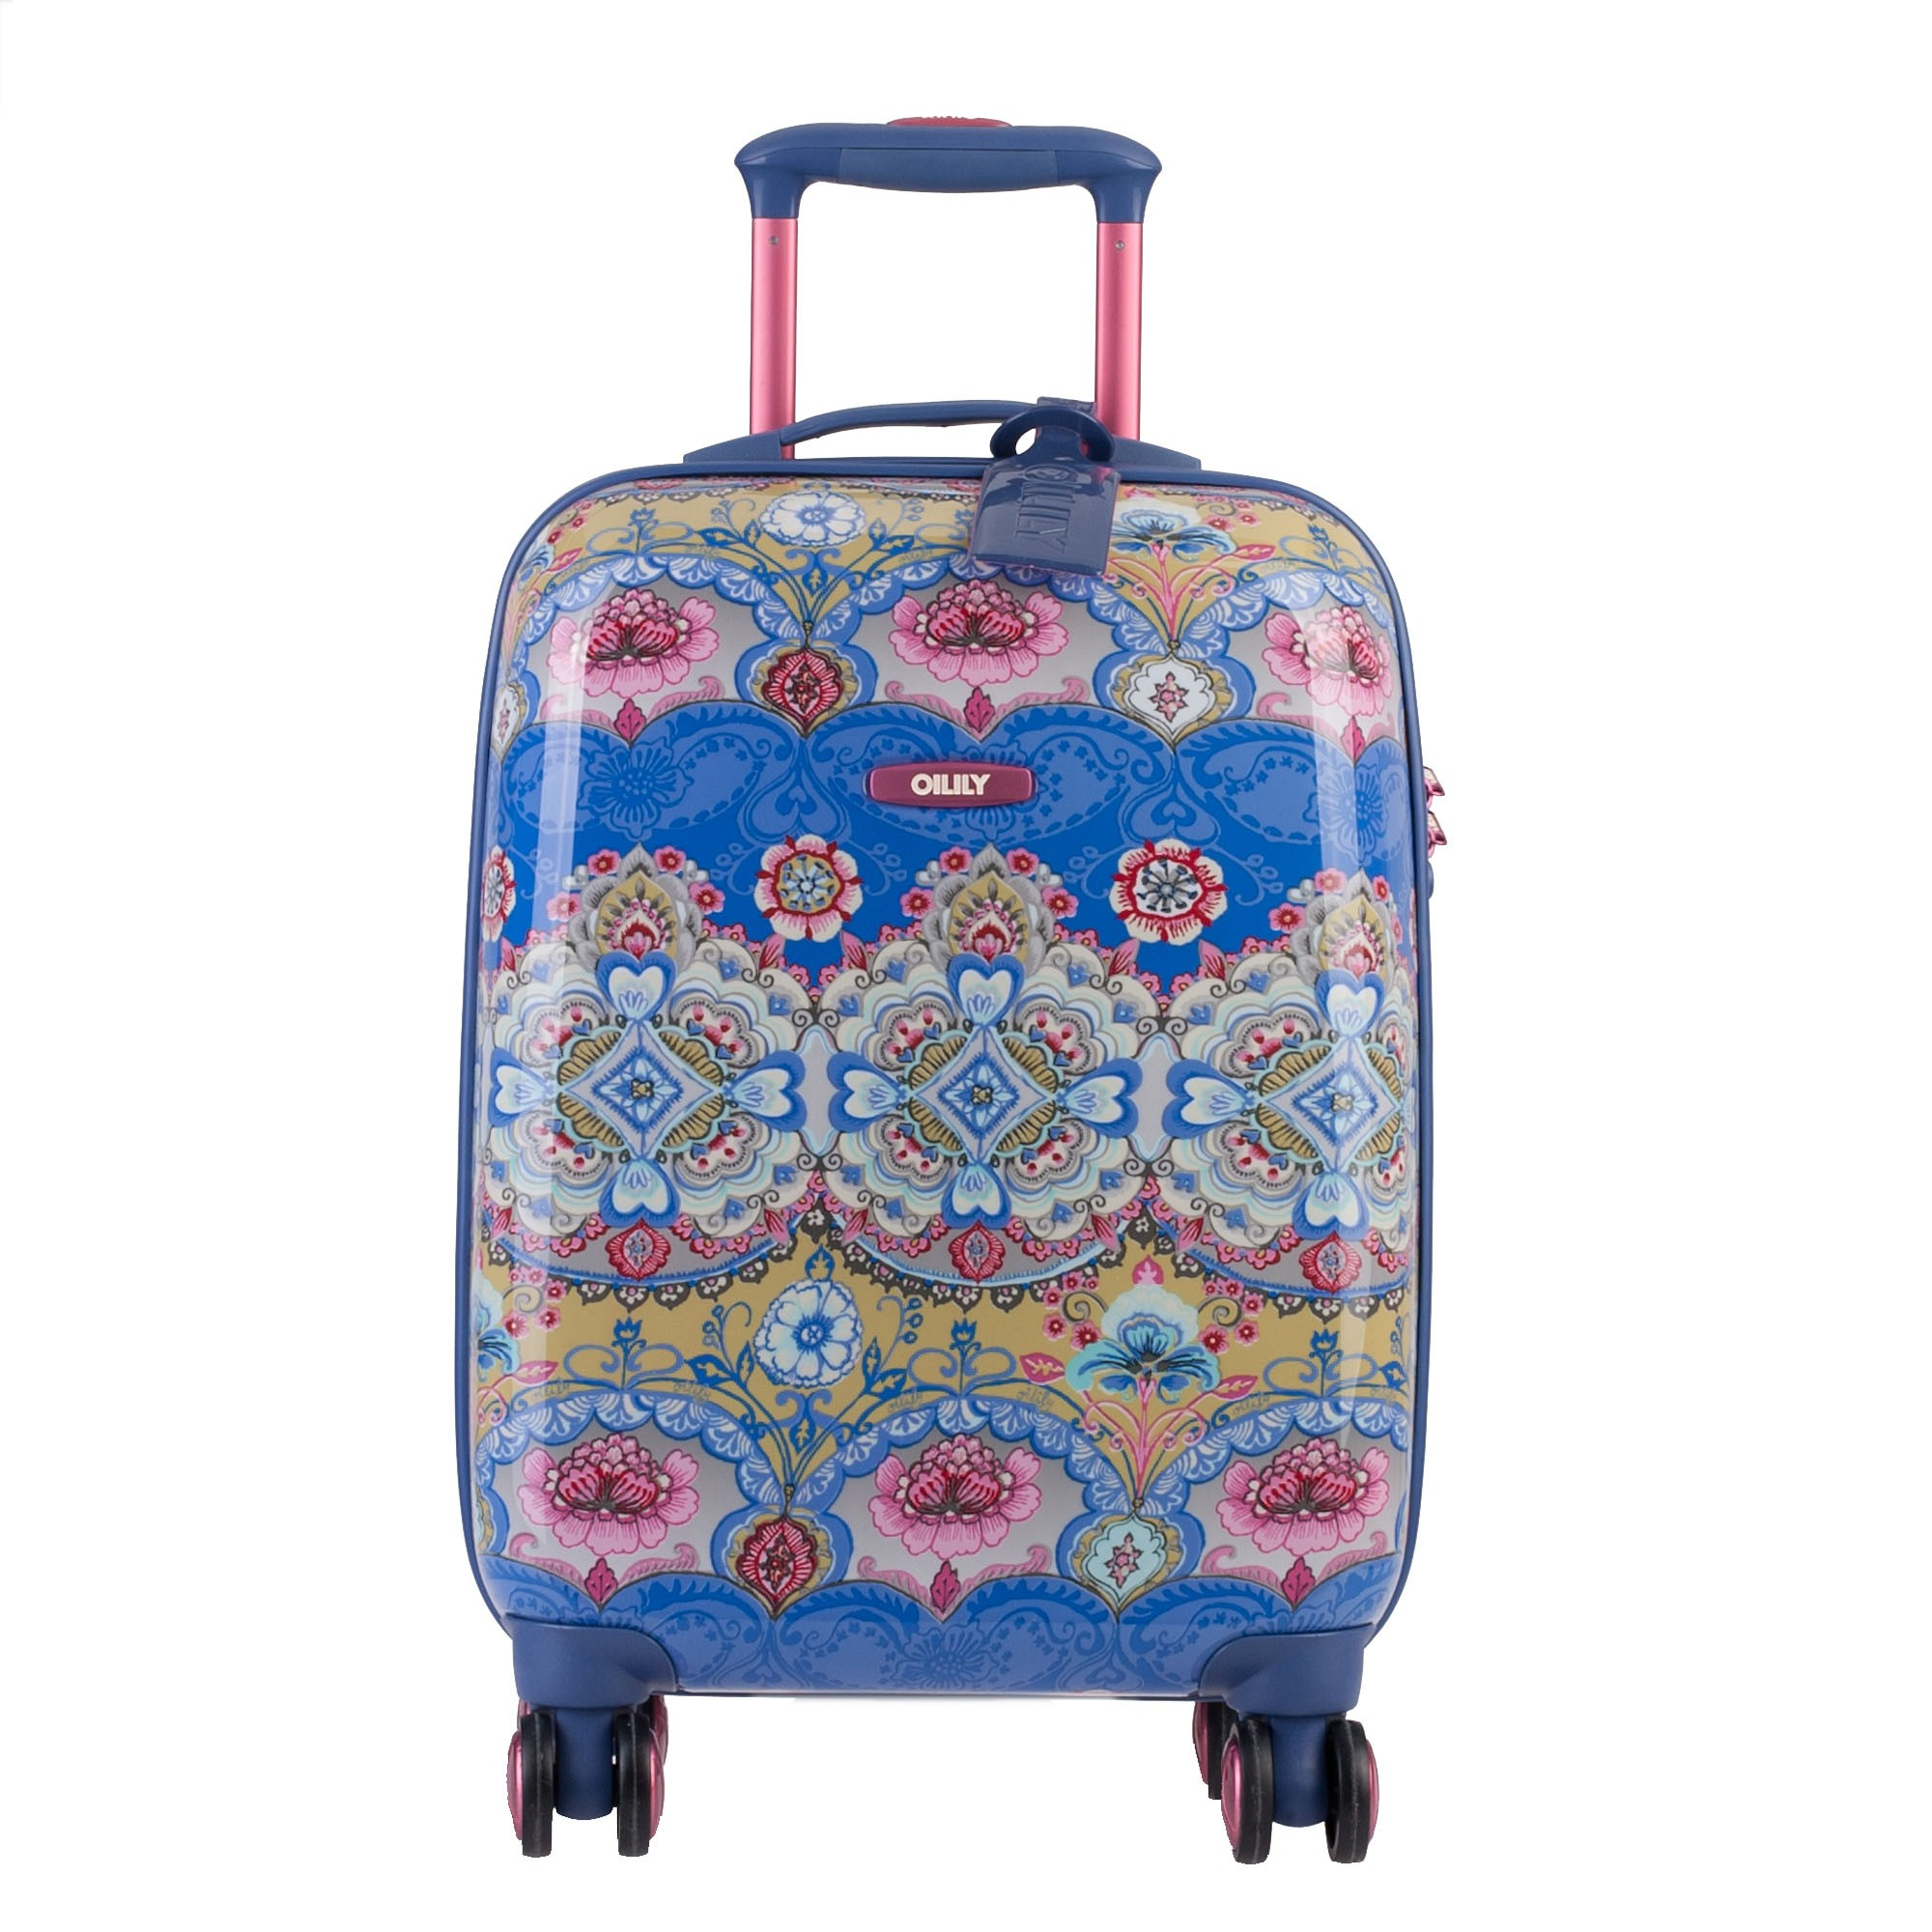 oilily travel 2013 lotus koffer trolley hartschale 4 rollen 55 cm 43l ebay. Black Bedroom Furniture Sets. Home Design Ideas